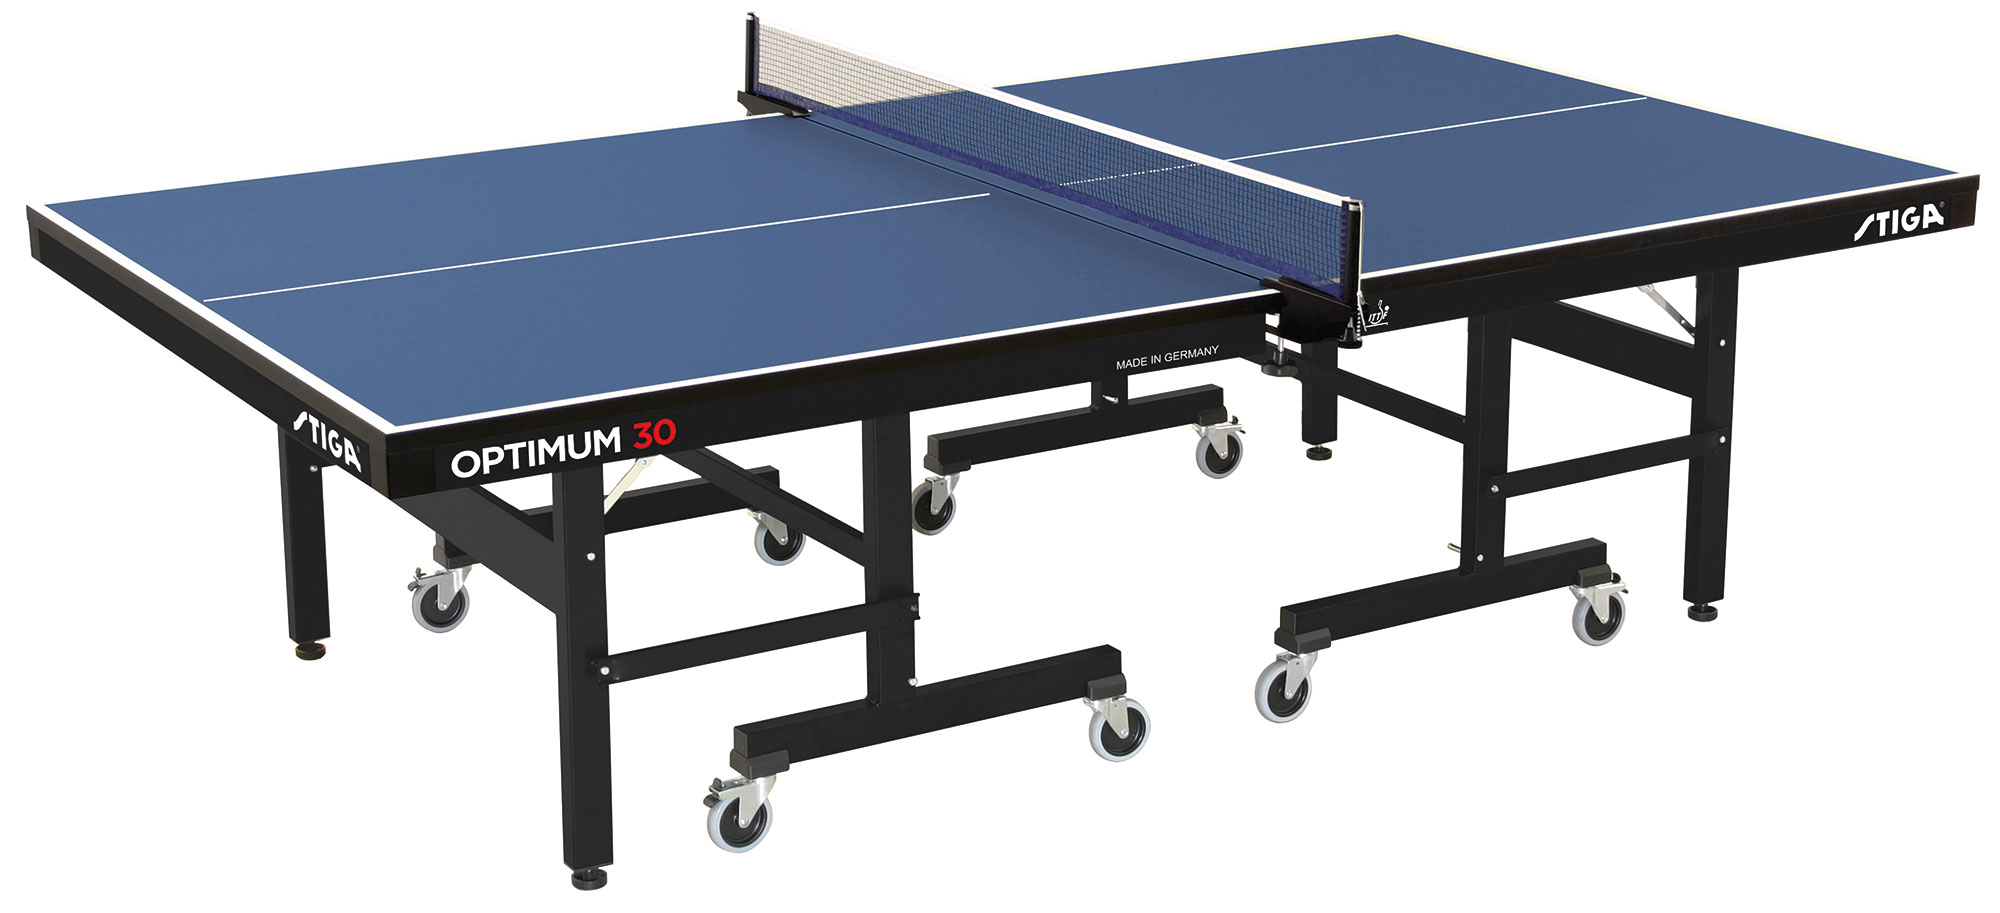 Thorntons table tennistable tennis table stiga optimum for Table in table